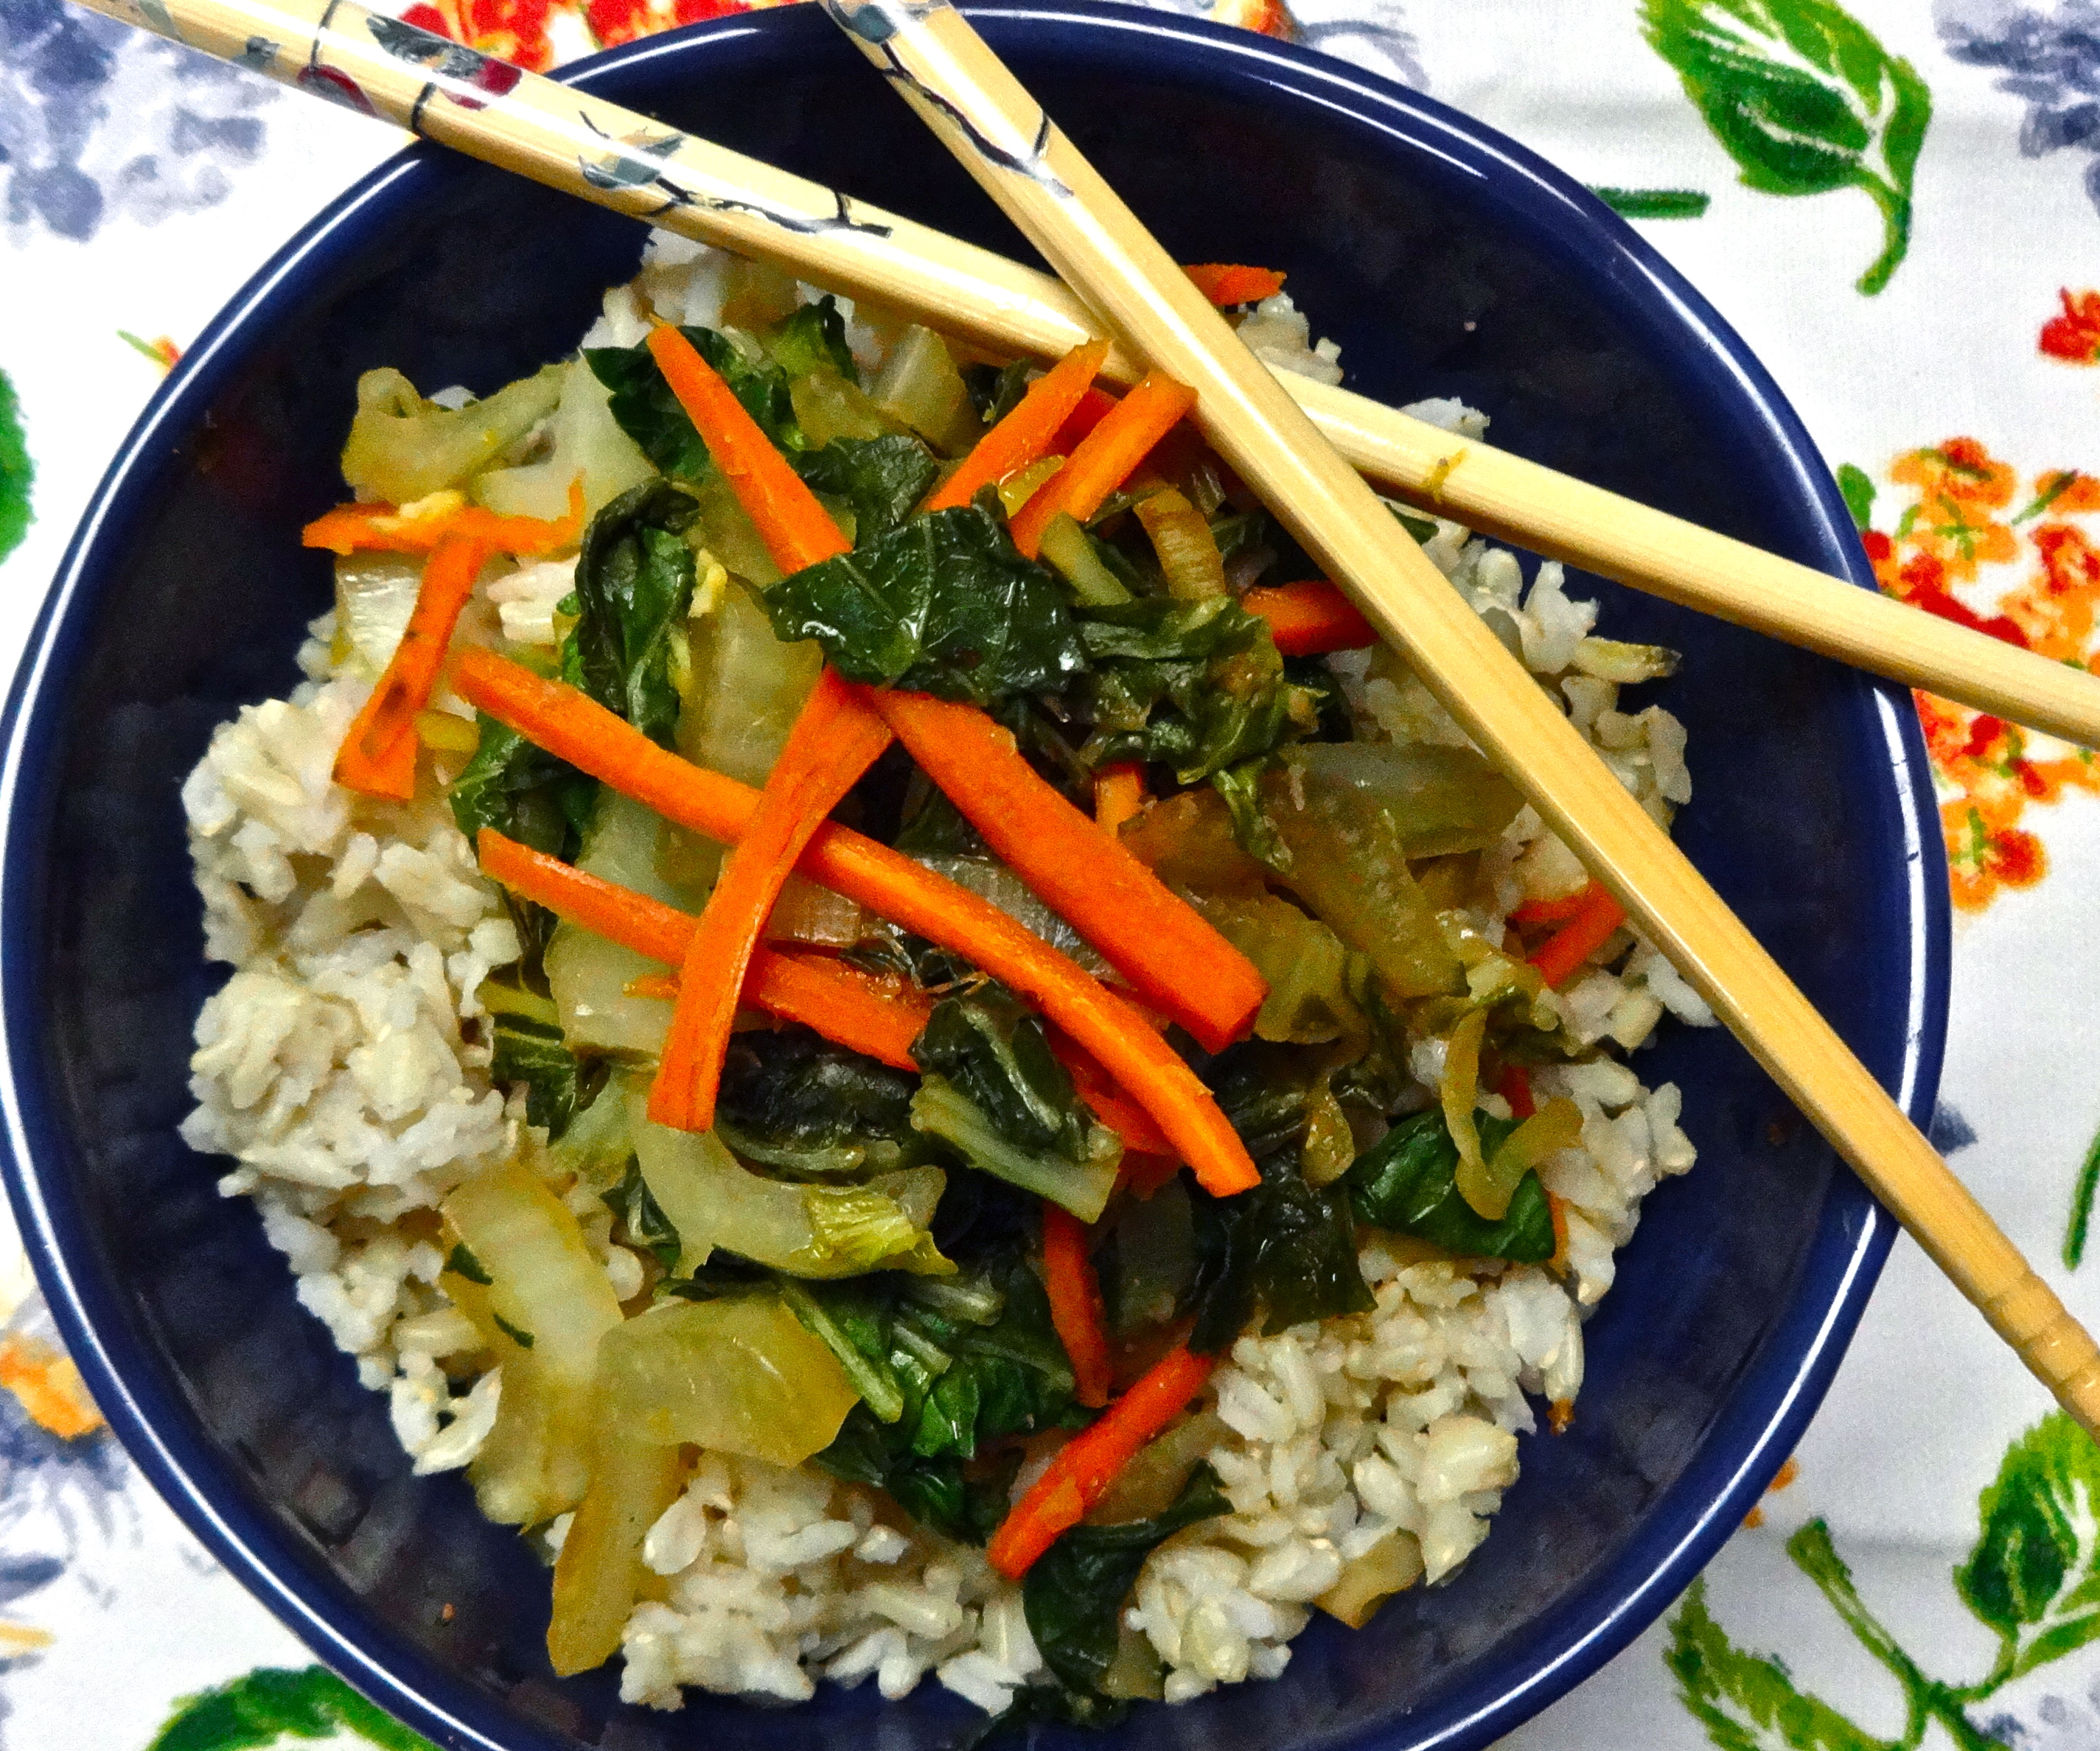 Ginger Baby Bok Choy Stir Fry with Spicy Tofu